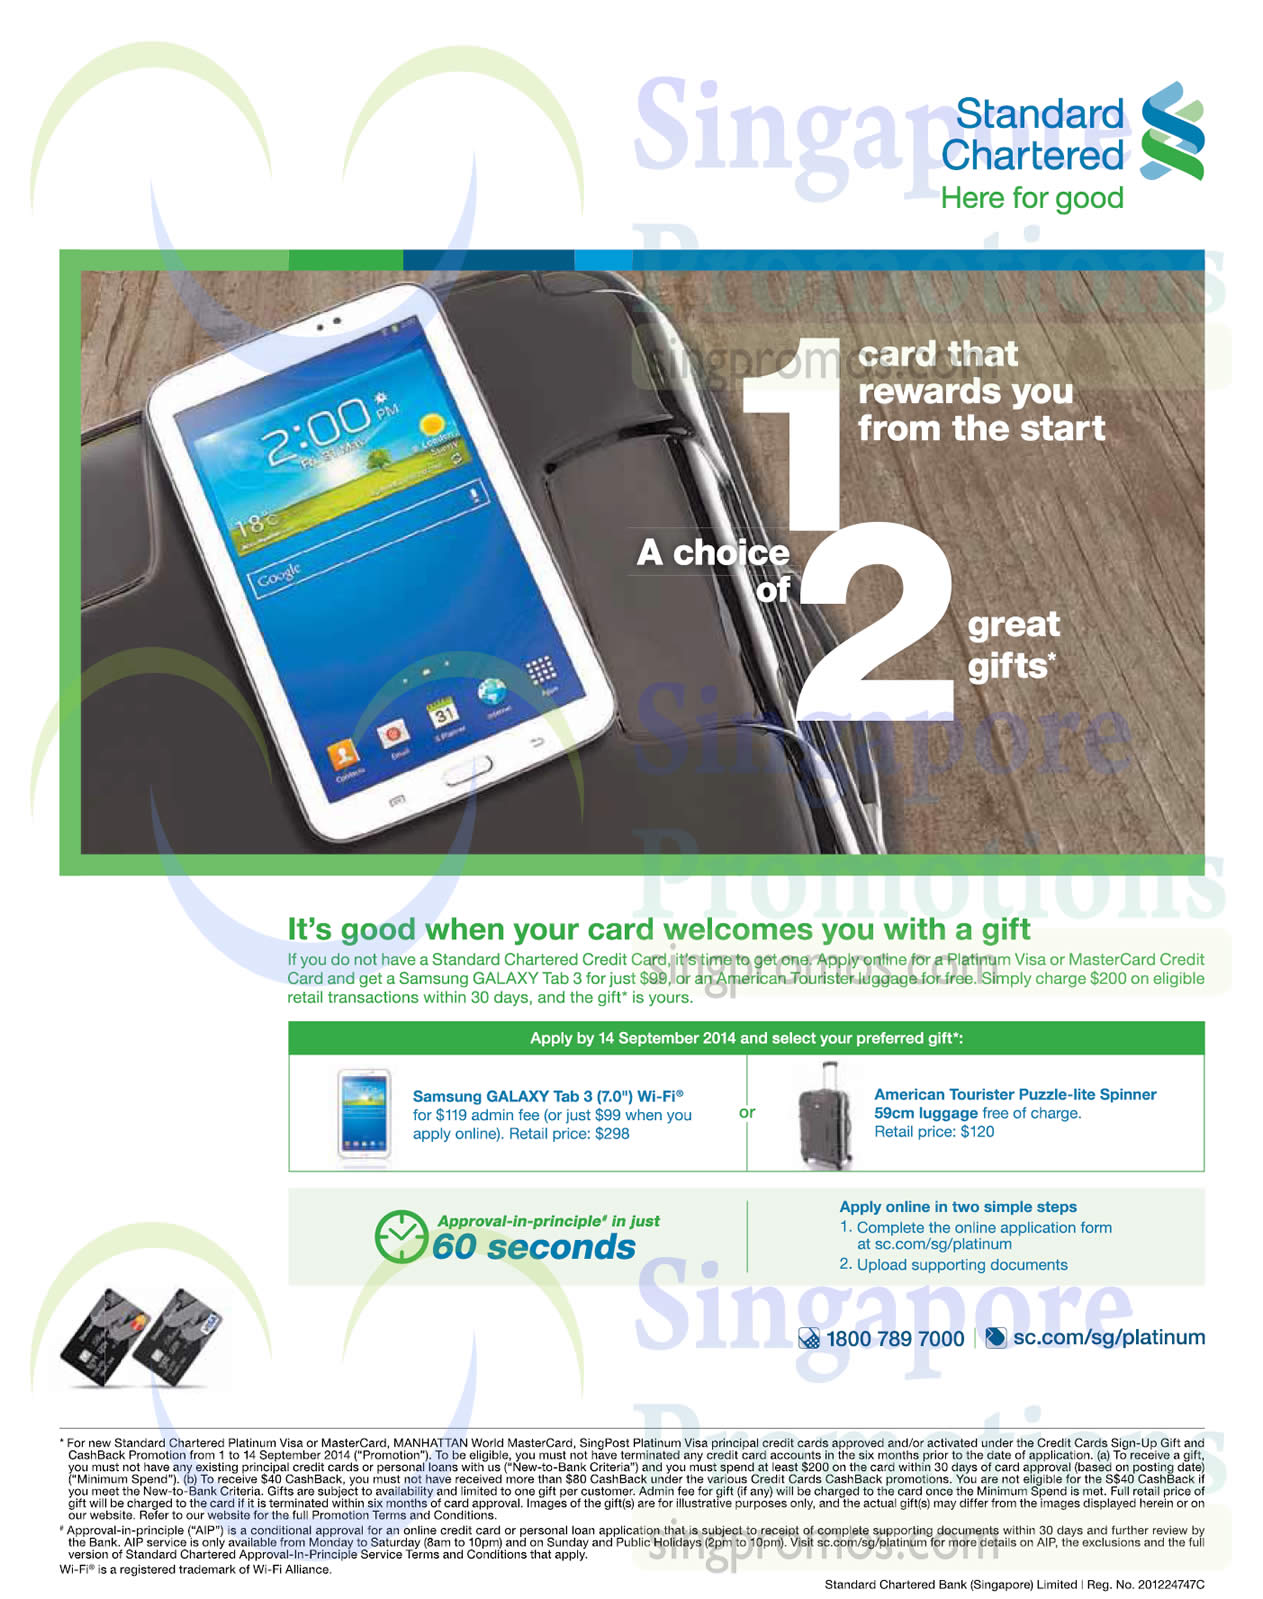 Standard chartered apply for credit card get free luggage 10 jul standard chartered apply for credit card get free luggage 10 jul 14 sep 2014 falaconquin